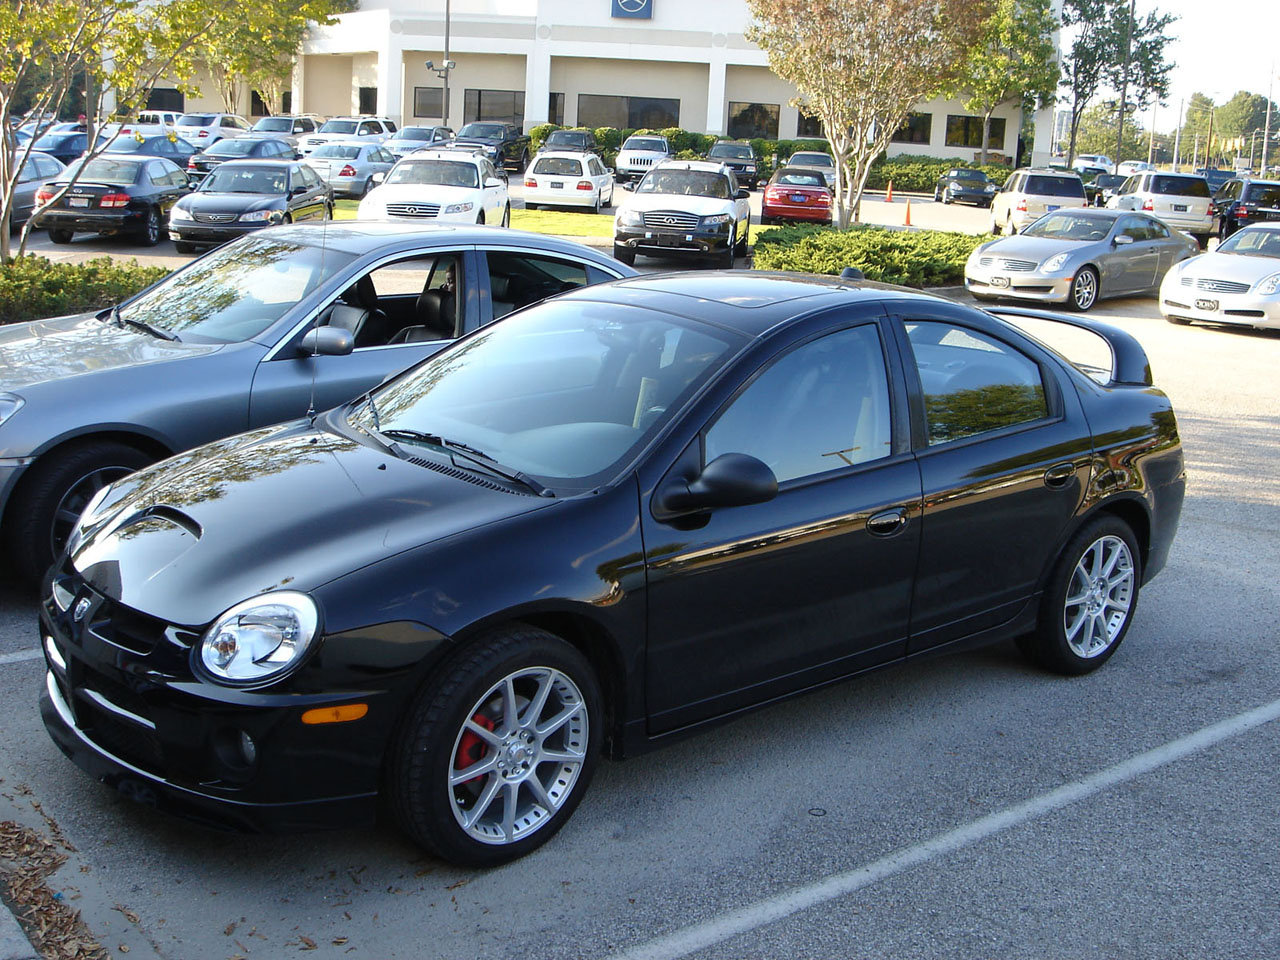 2005 dodge neon srt 4 mopar stage 2 pictures mods. Black Bedroom Furniture Sets. Home Design Ideas